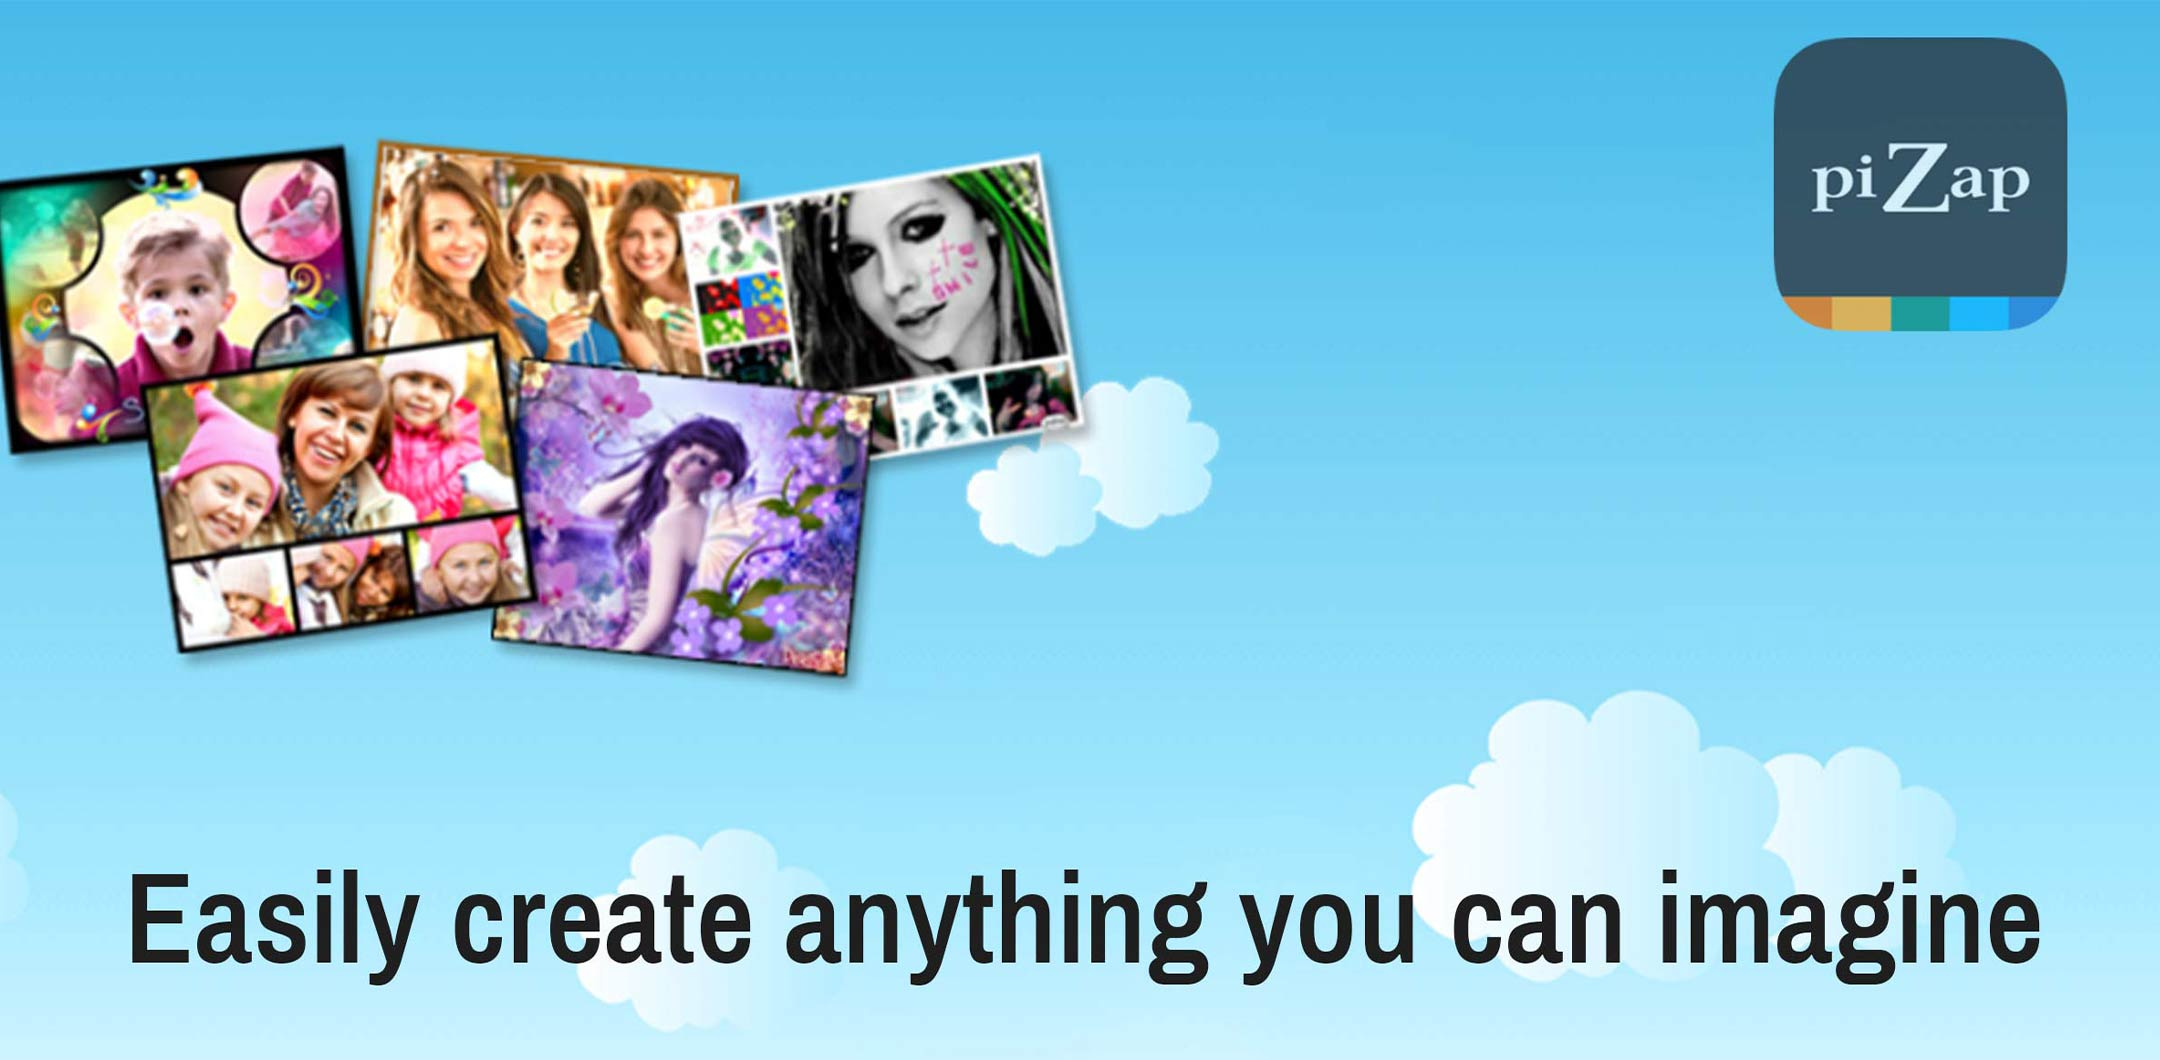 Pizap Group Buy Best Online Photo Editor Collage Maker Tool - Online Collage Maker With Text